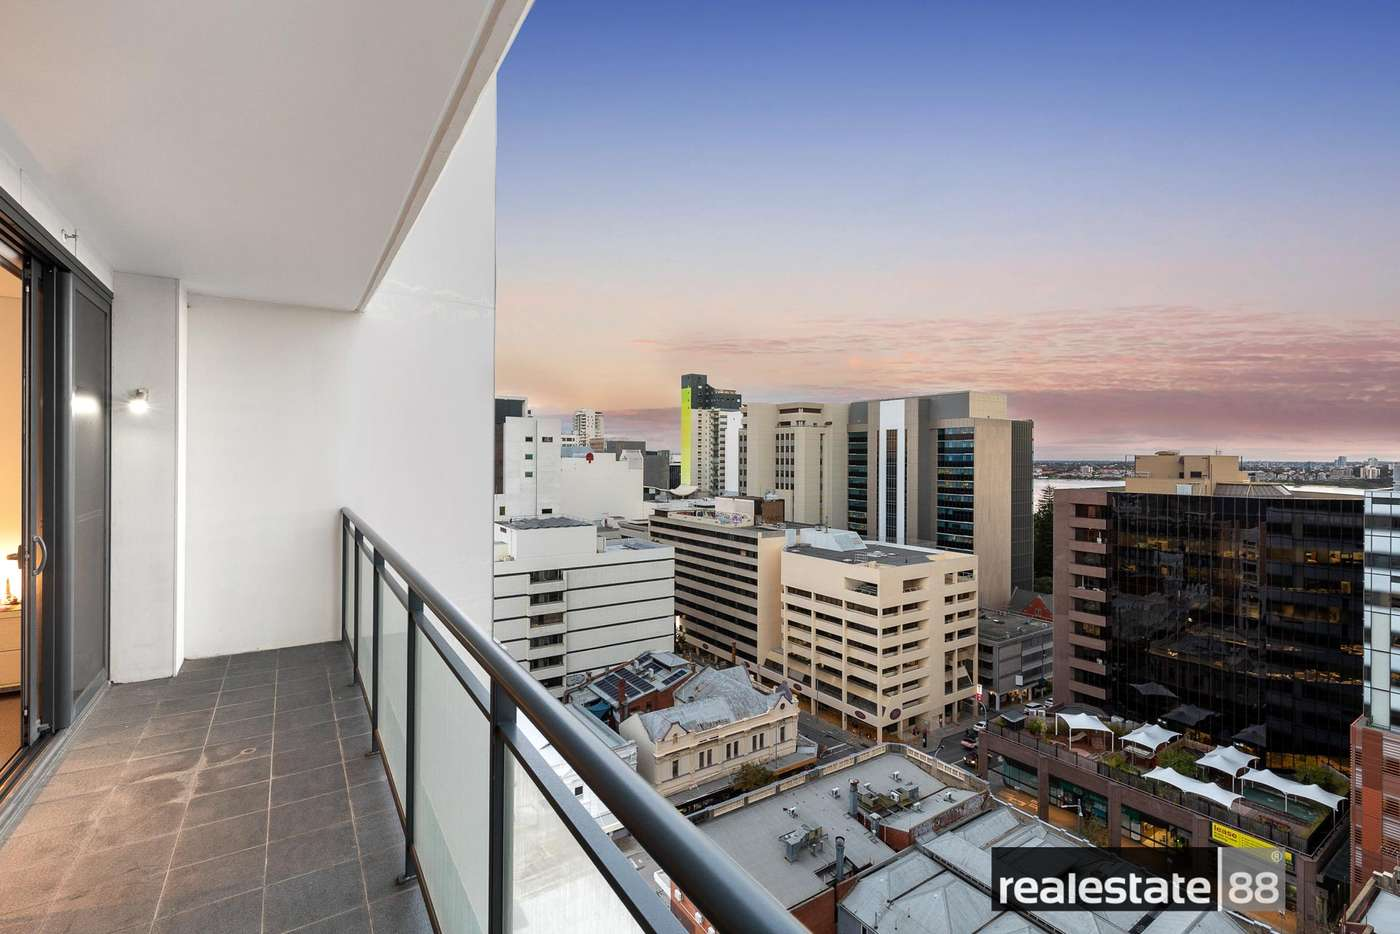 Main view of Homely apartment listing, 98/101 Murray Street, Perth WA 6000